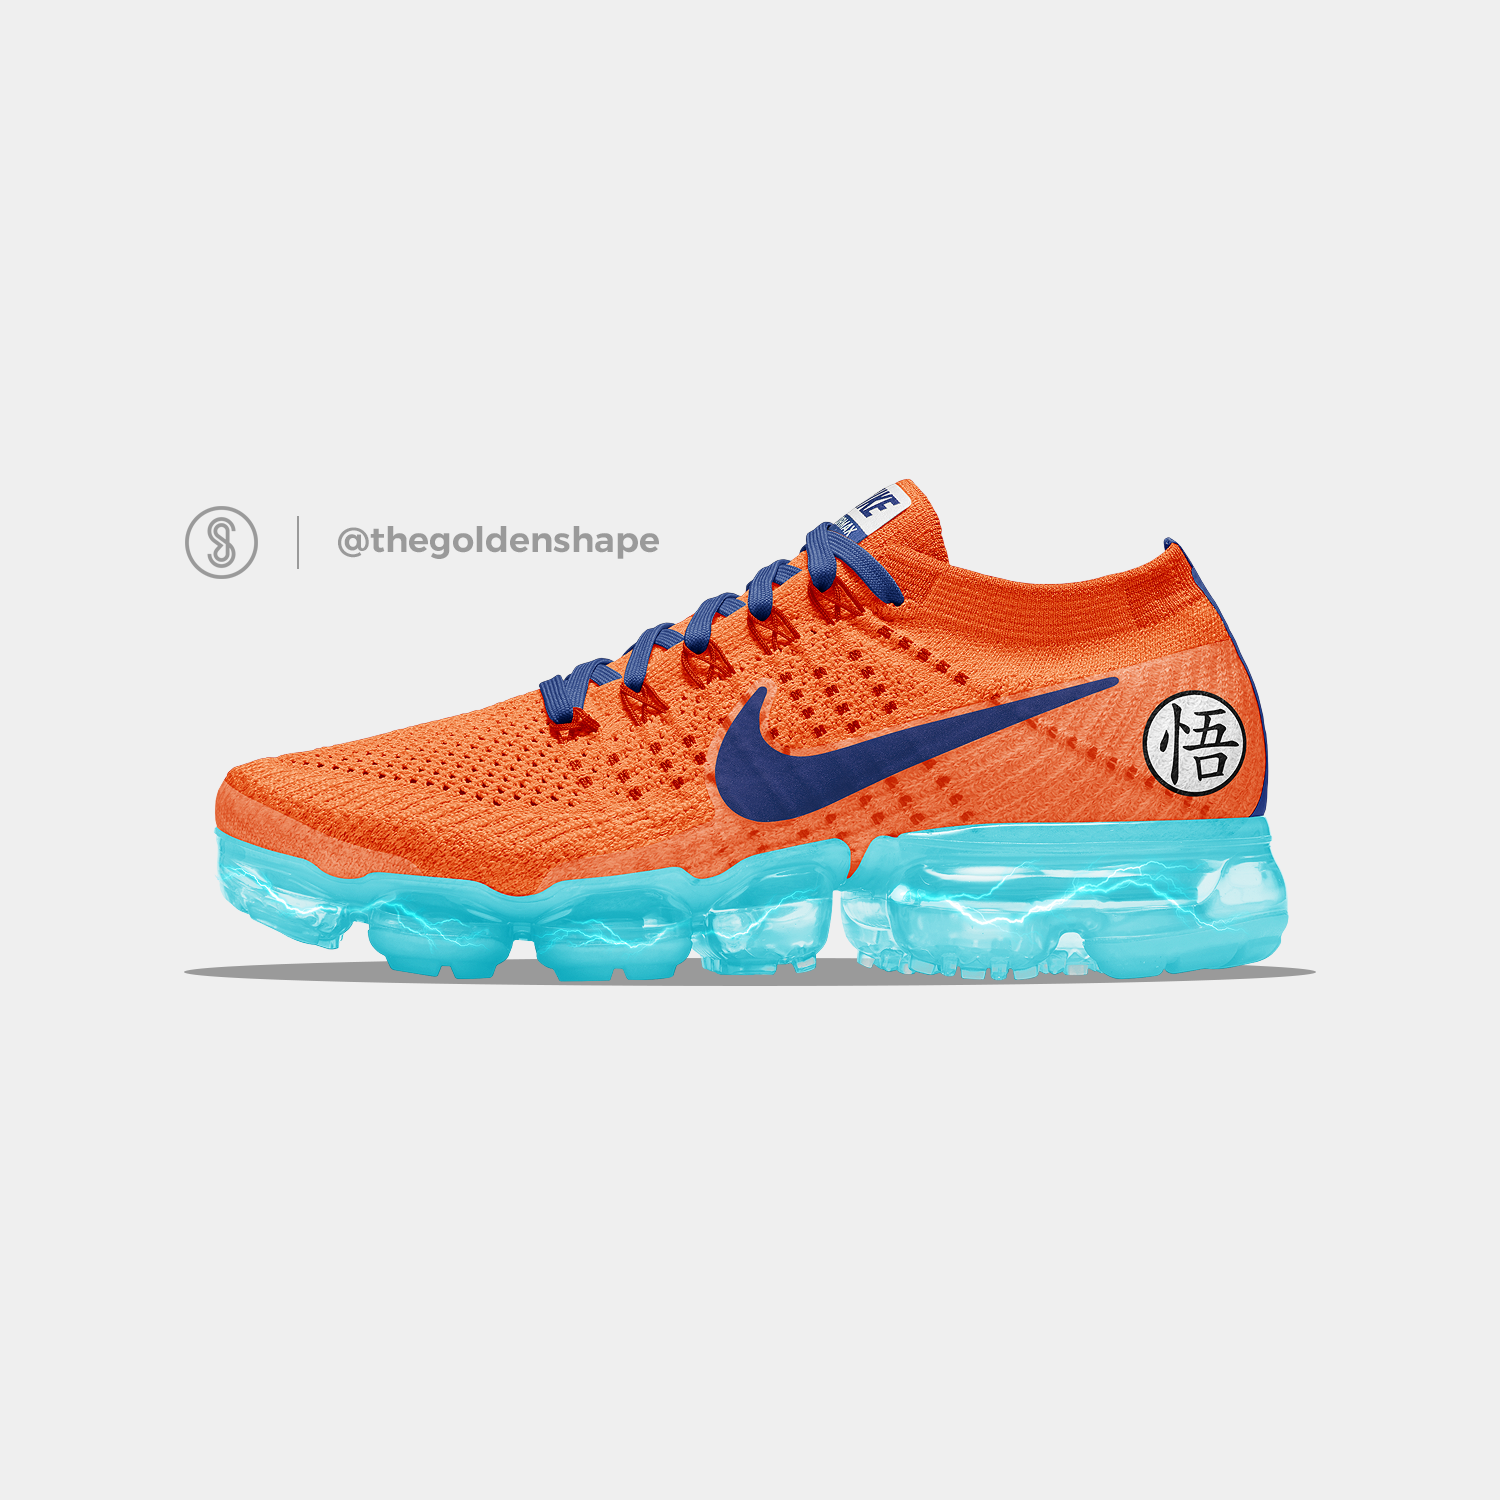 new product 4a23a f2313 Dragon Ball Super x Nike Air VaporMax Goku